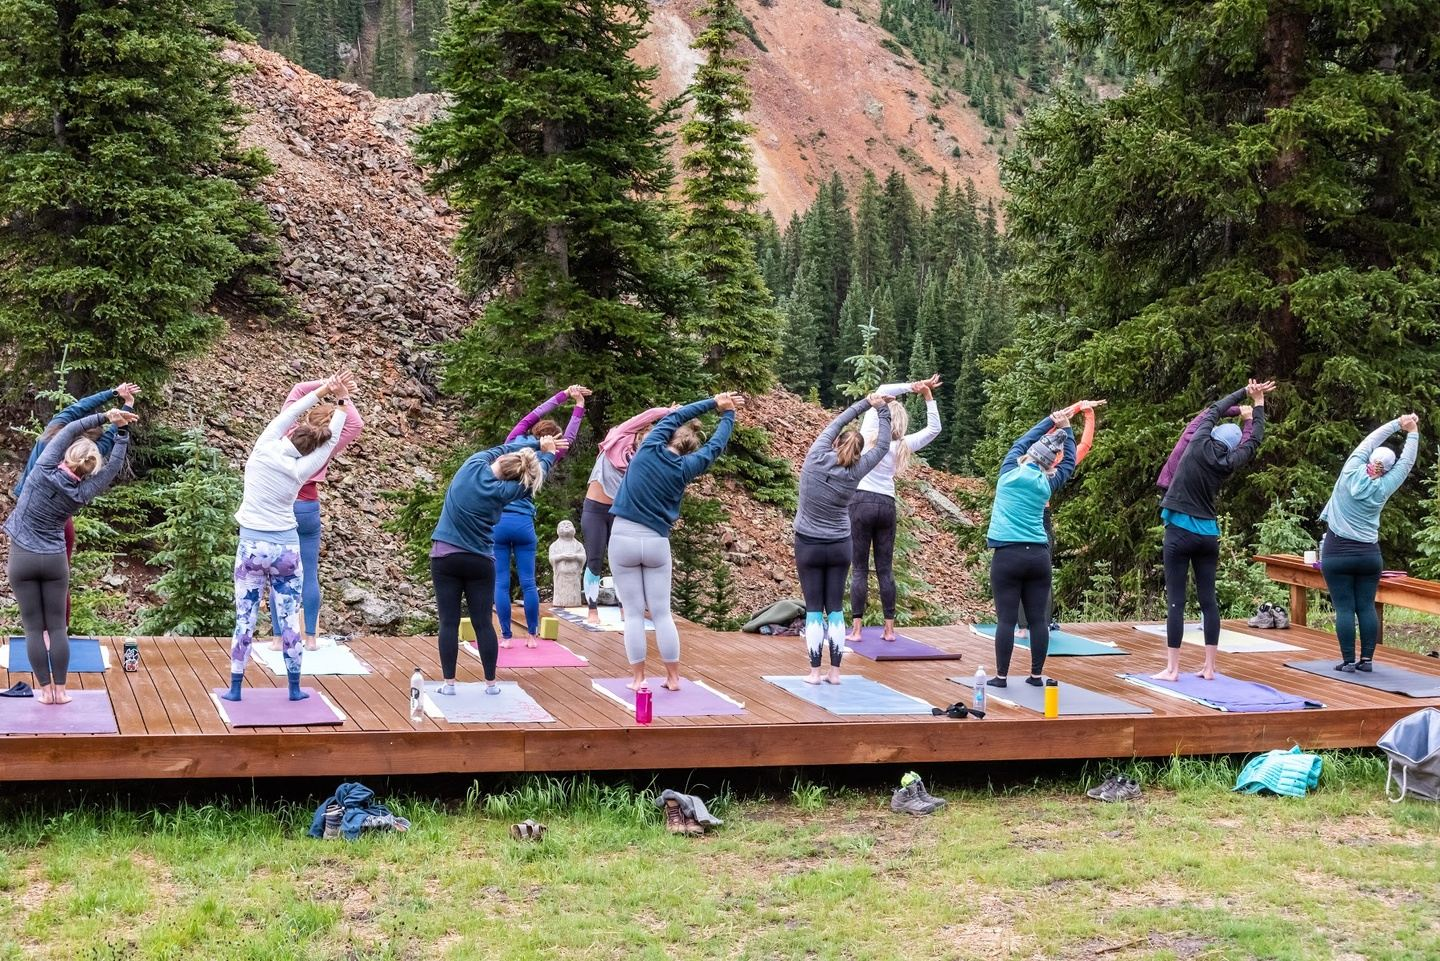 Yoga in the Backcountry: A High Alpine Retreat